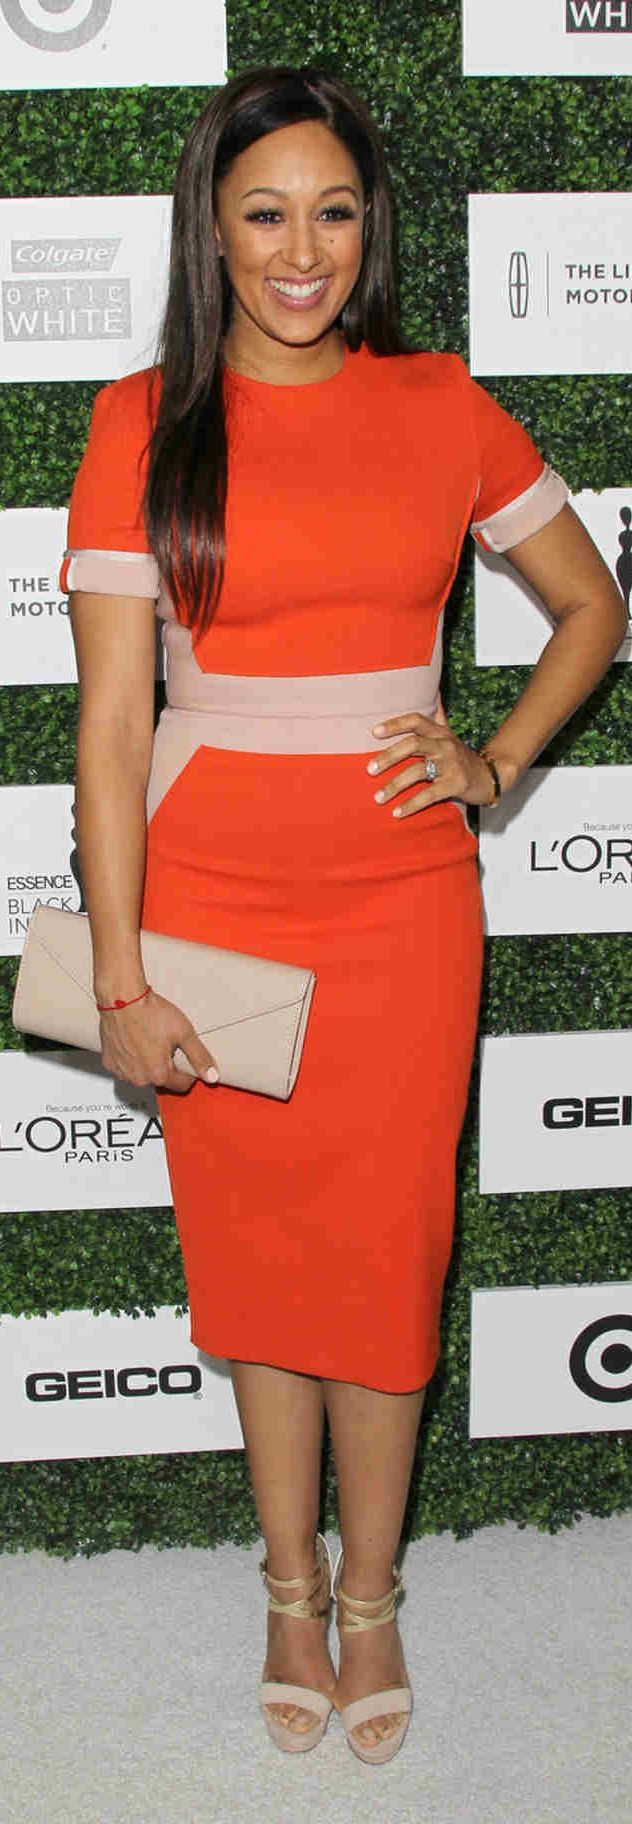 d048a9ce2cc Tamera Mowry- Housley. I like this little tangerine dress